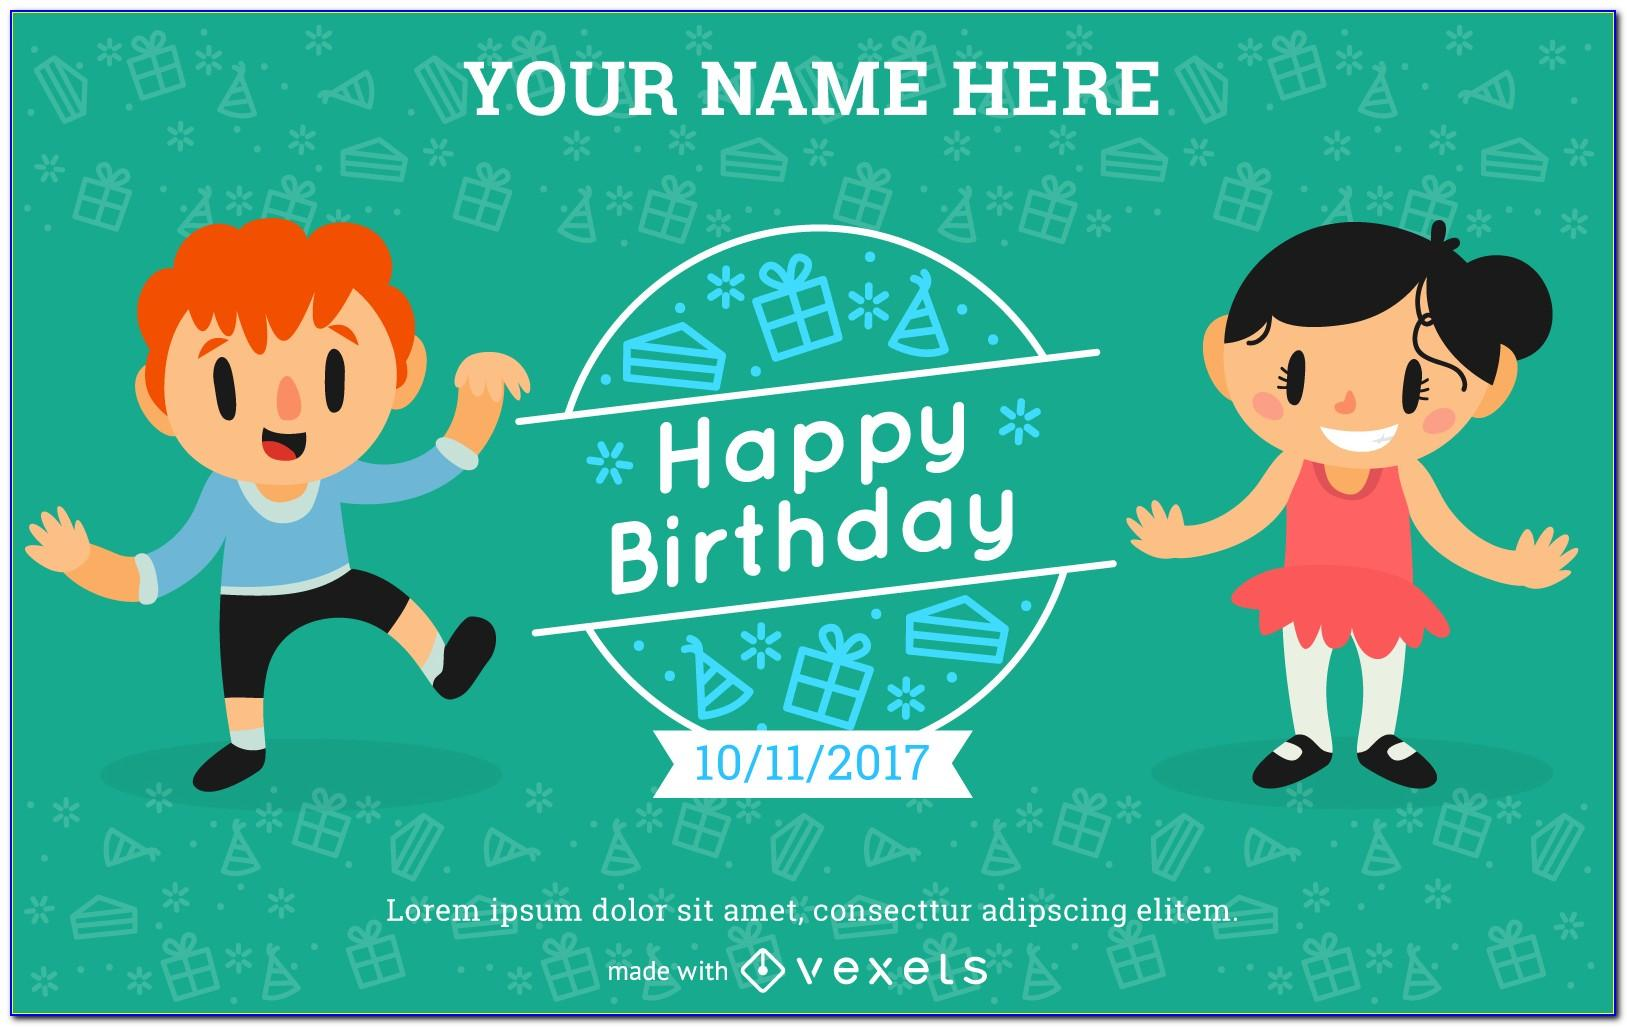 Invitation Card Design For Birthday Party Free